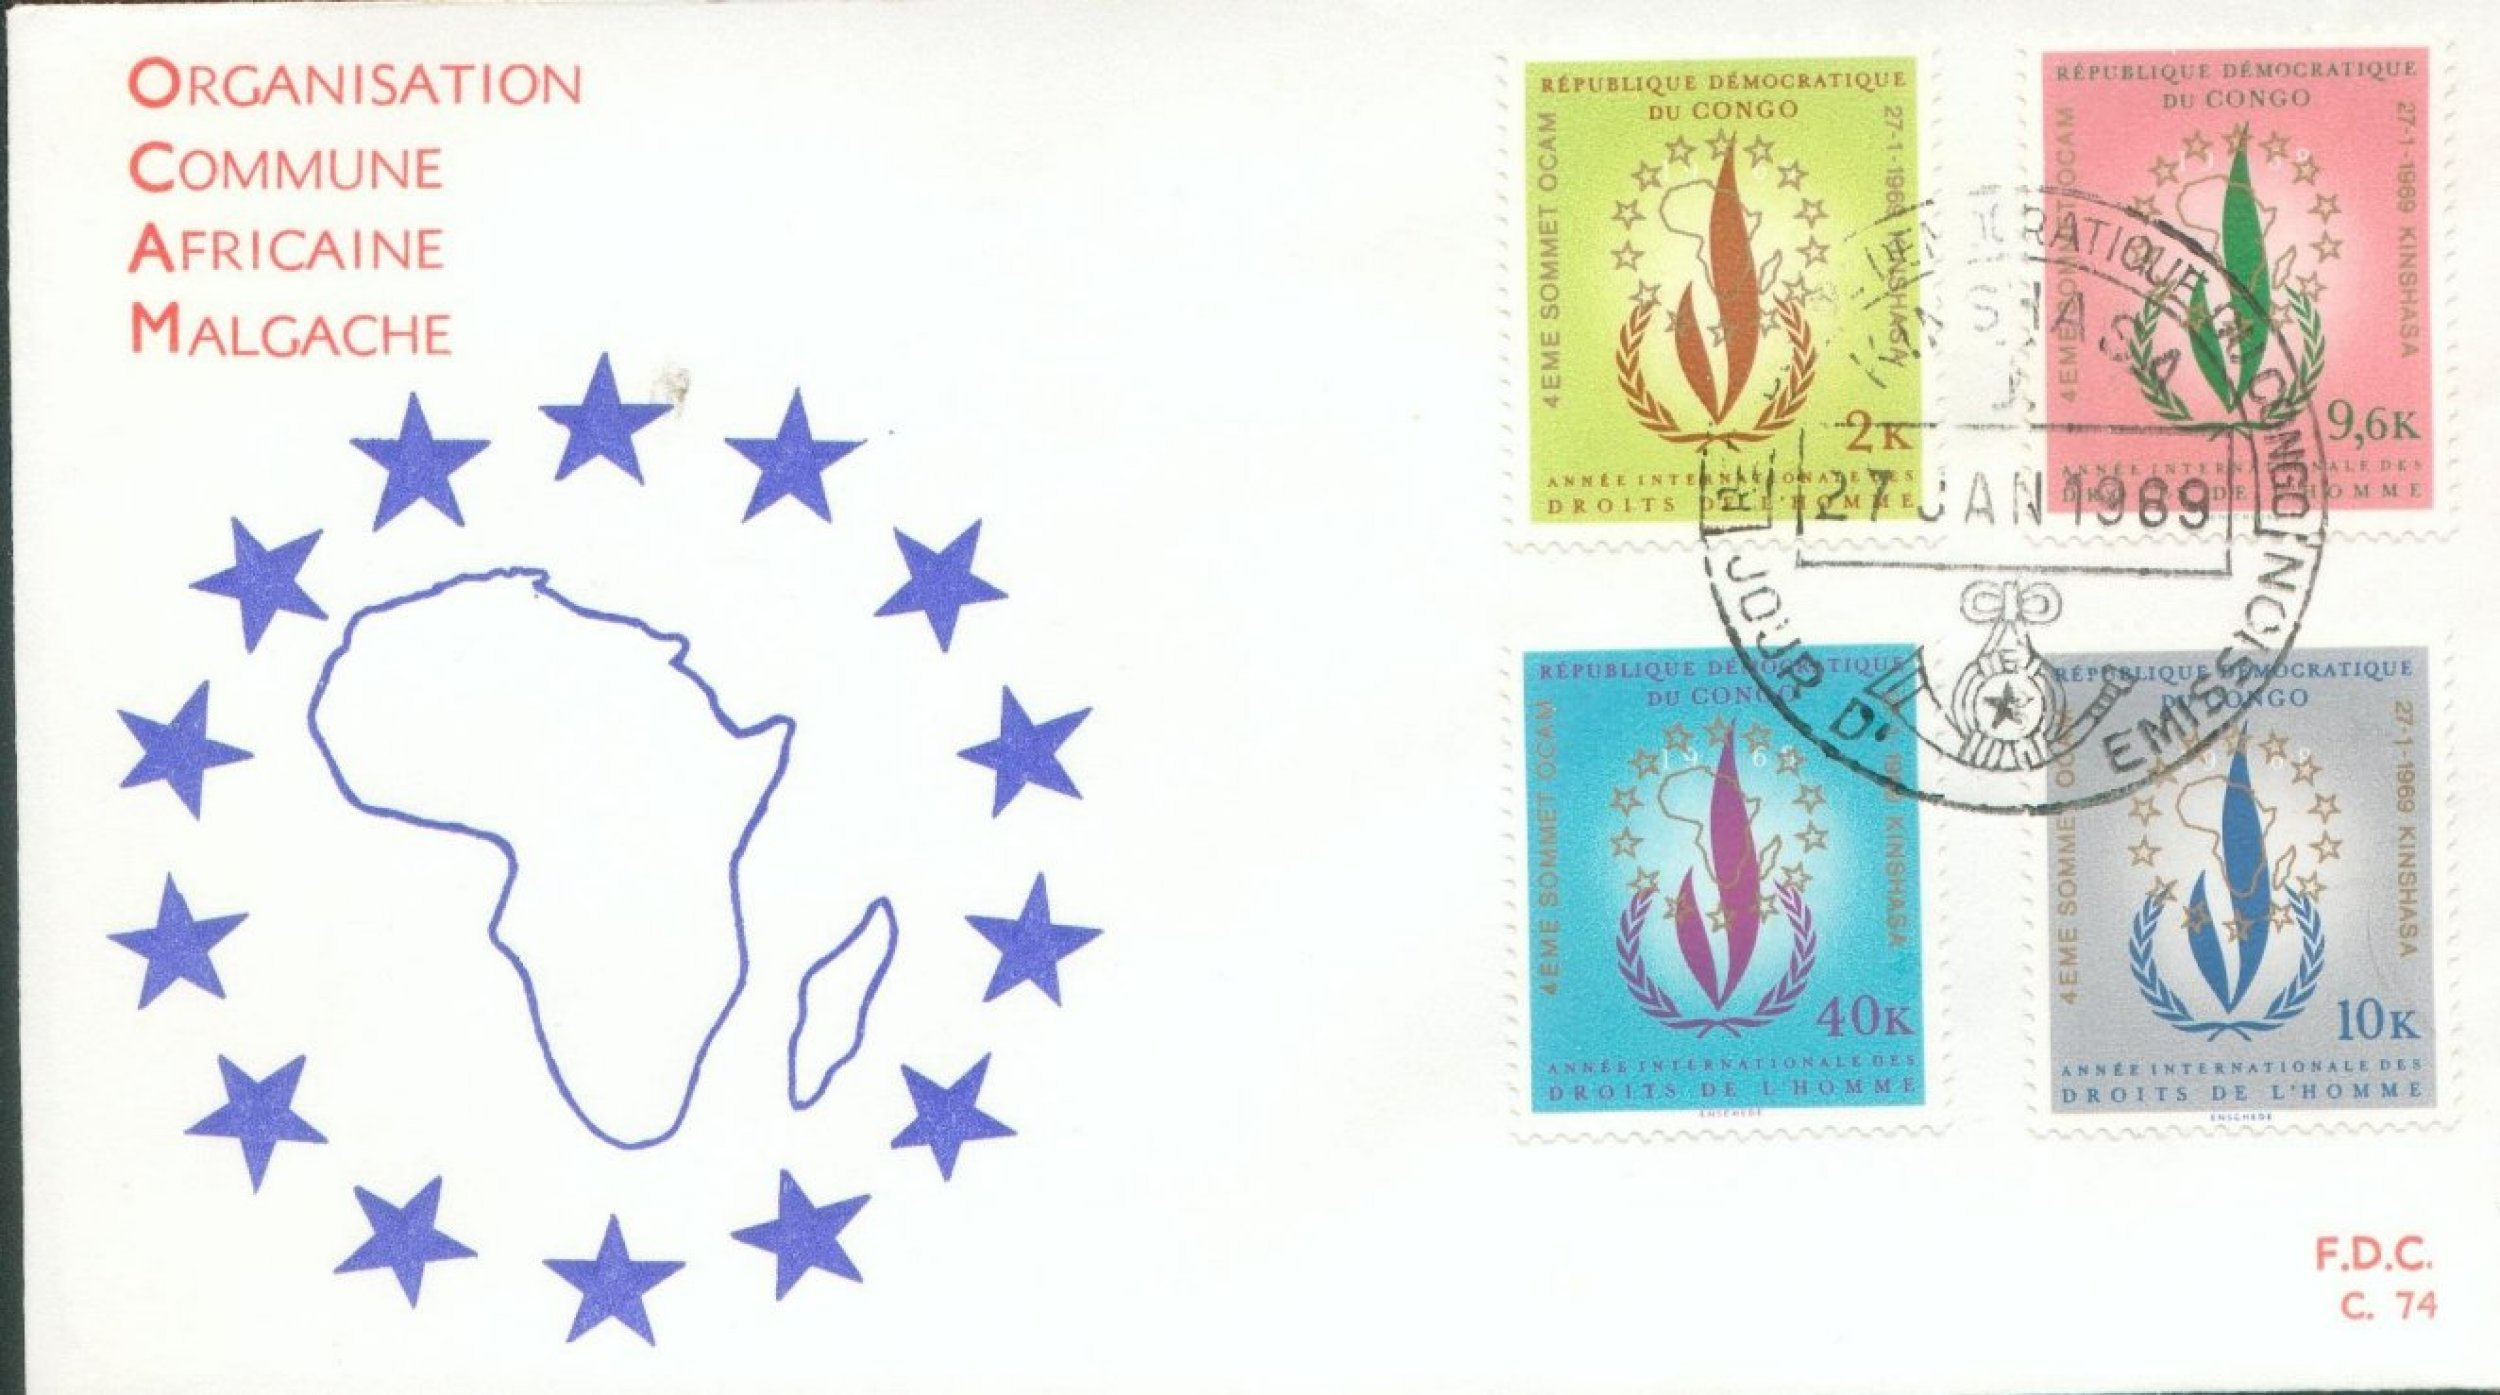 FDC C74